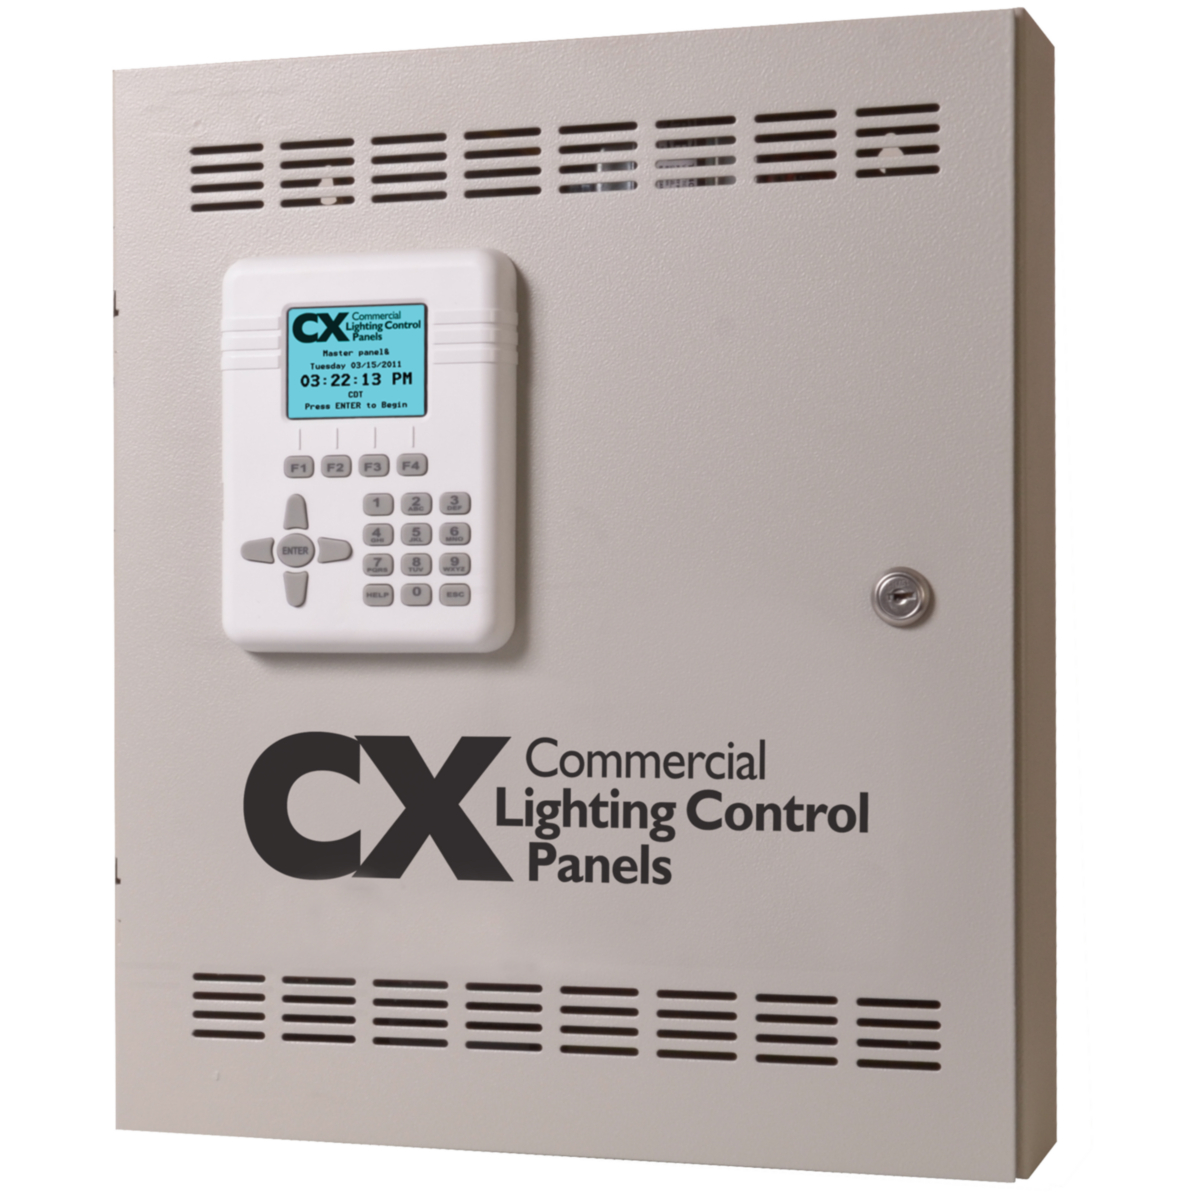 cx lighting control panels 4 and 8 relays brand hubbell control rh hubbell com lighting control panel wiring diagram pdf lighting control panel wiring diagram pdf